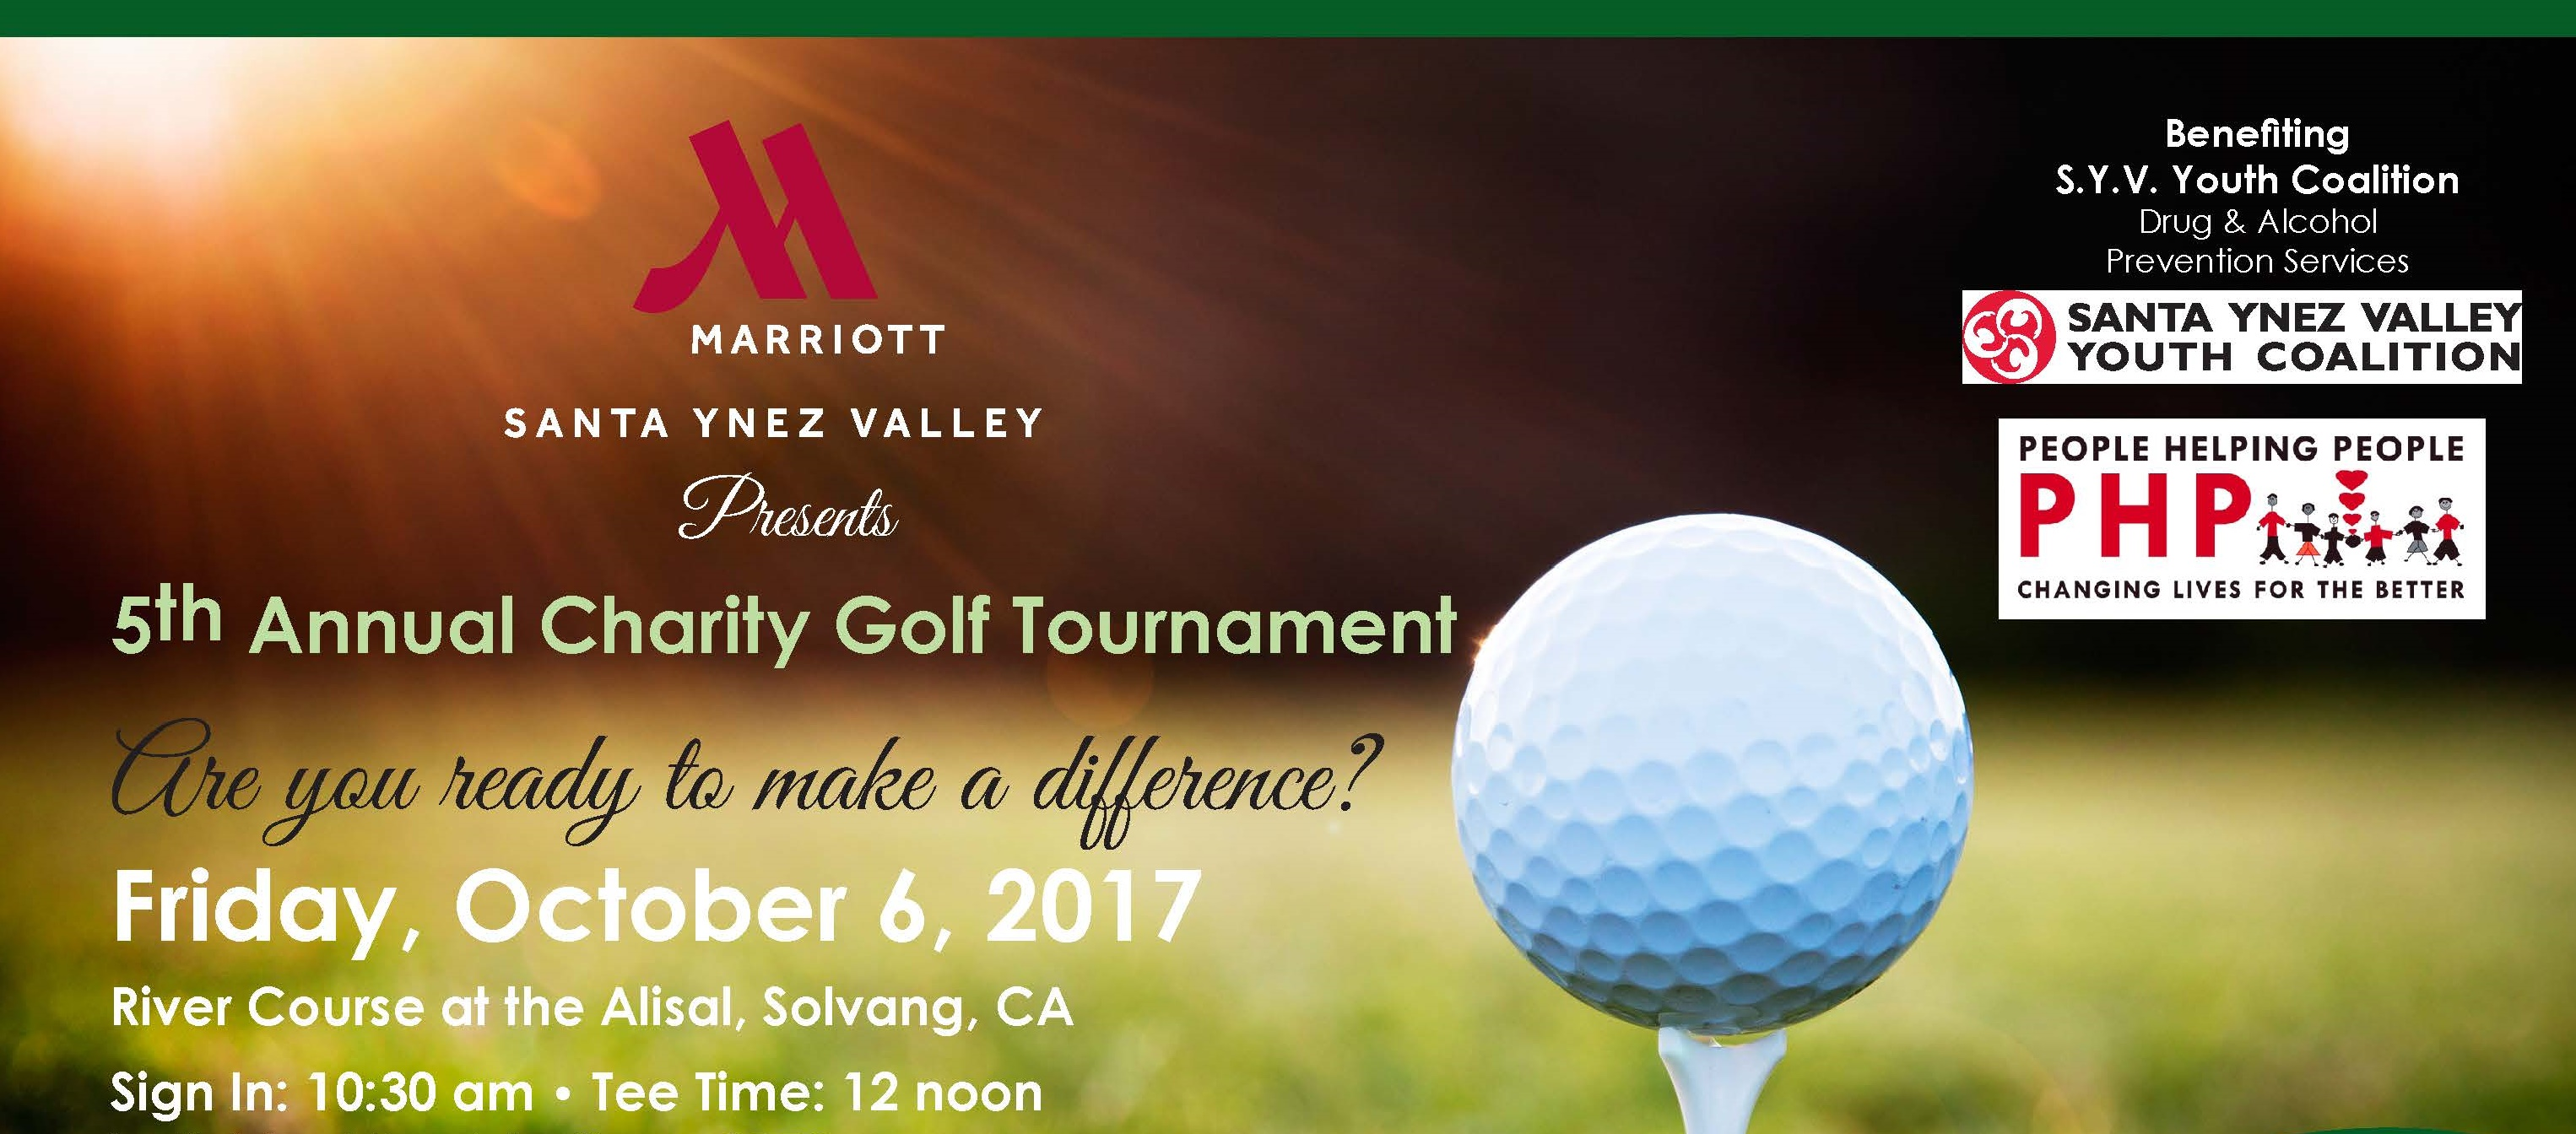 Marriot-Golf-Tourny-Flyer-2017-cropped